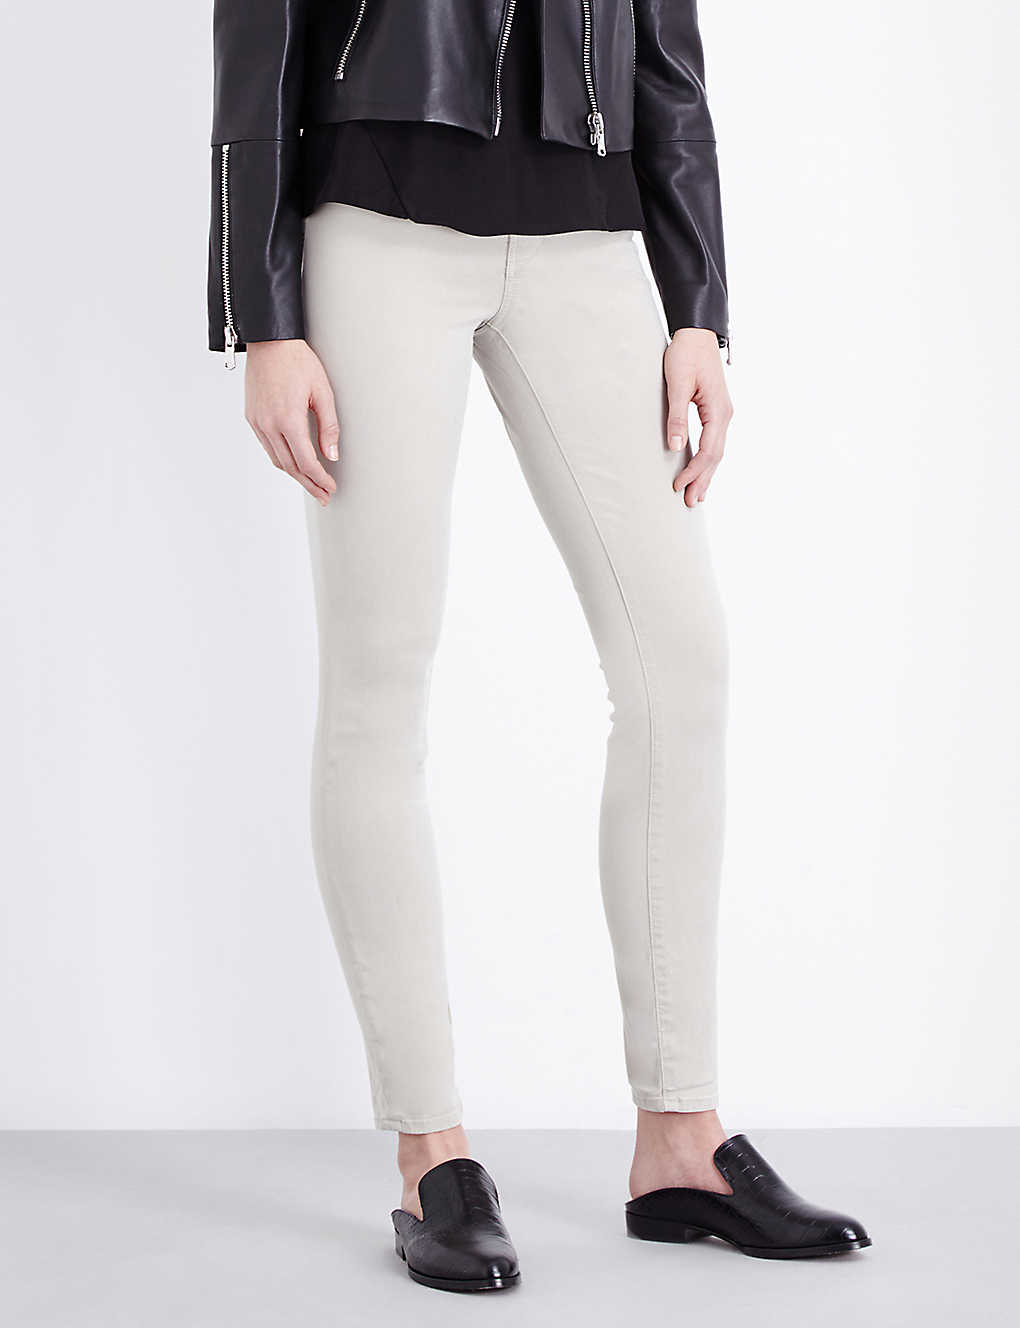 ddc5c5f3580 J BRAND - 485 Luxe Sateen super-skinny mid-rise jeans